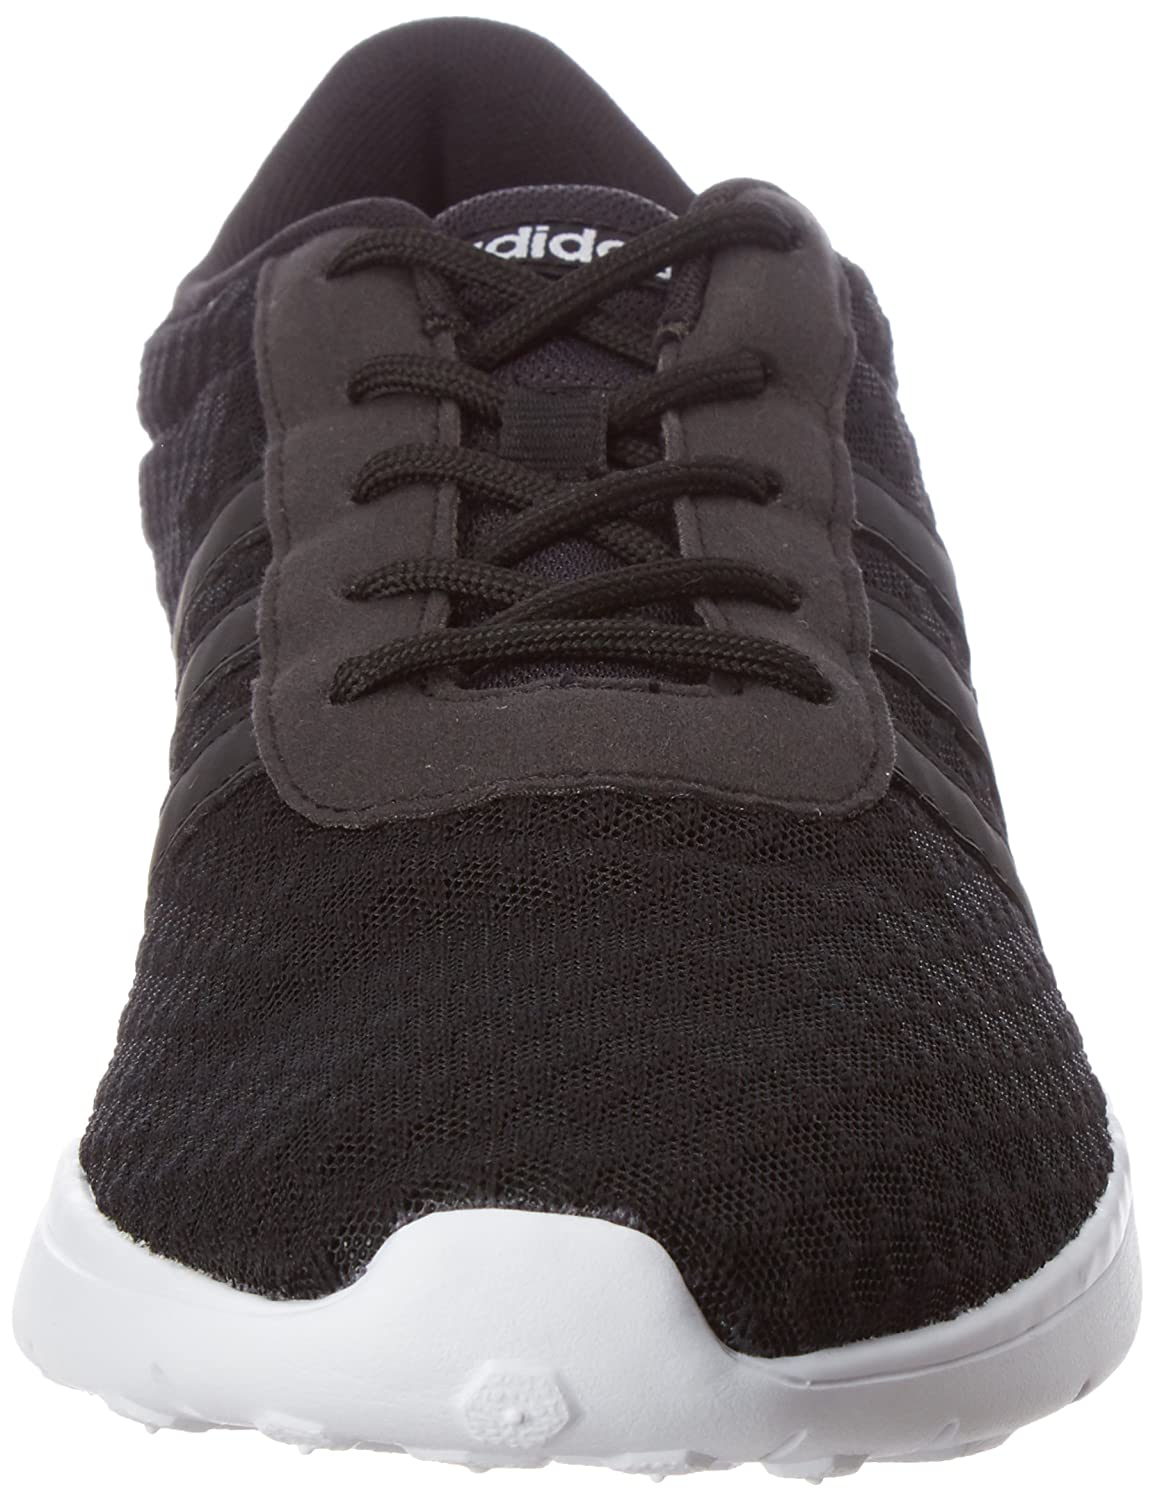 Amazon.com | adidas - Lite Racer W - AW4960 - Color: Black - Size: 6.0 | Fashion Sneakers